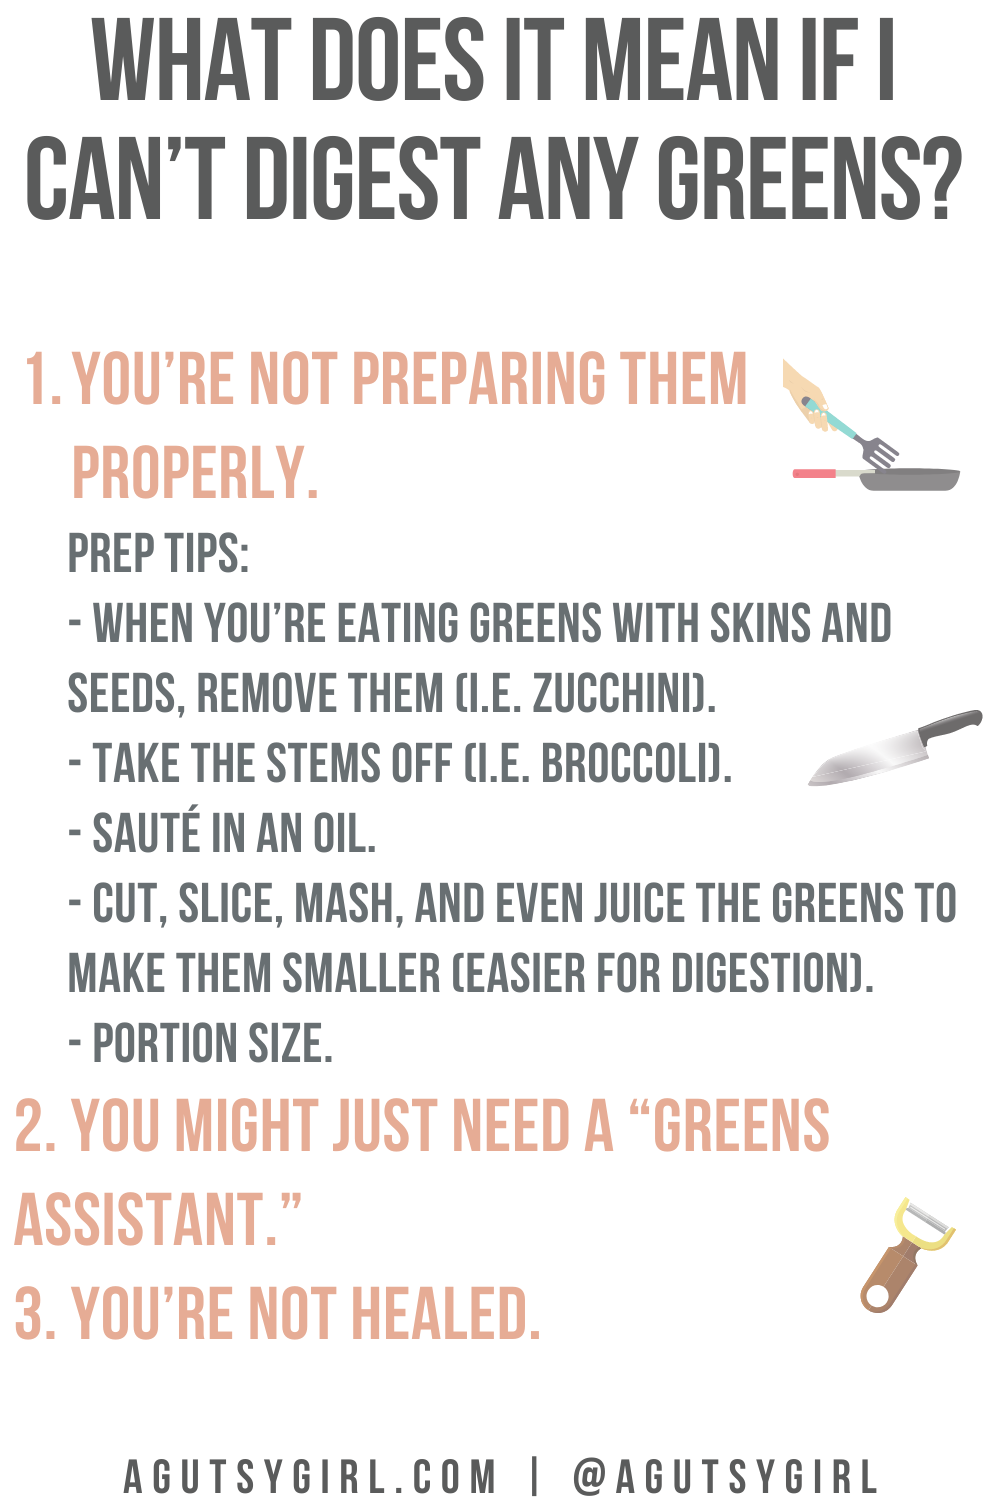 What Does it Mean if I Can't Digest Any Greens? agutsygirl.com truth green #rawvegetables #guthealth #greens